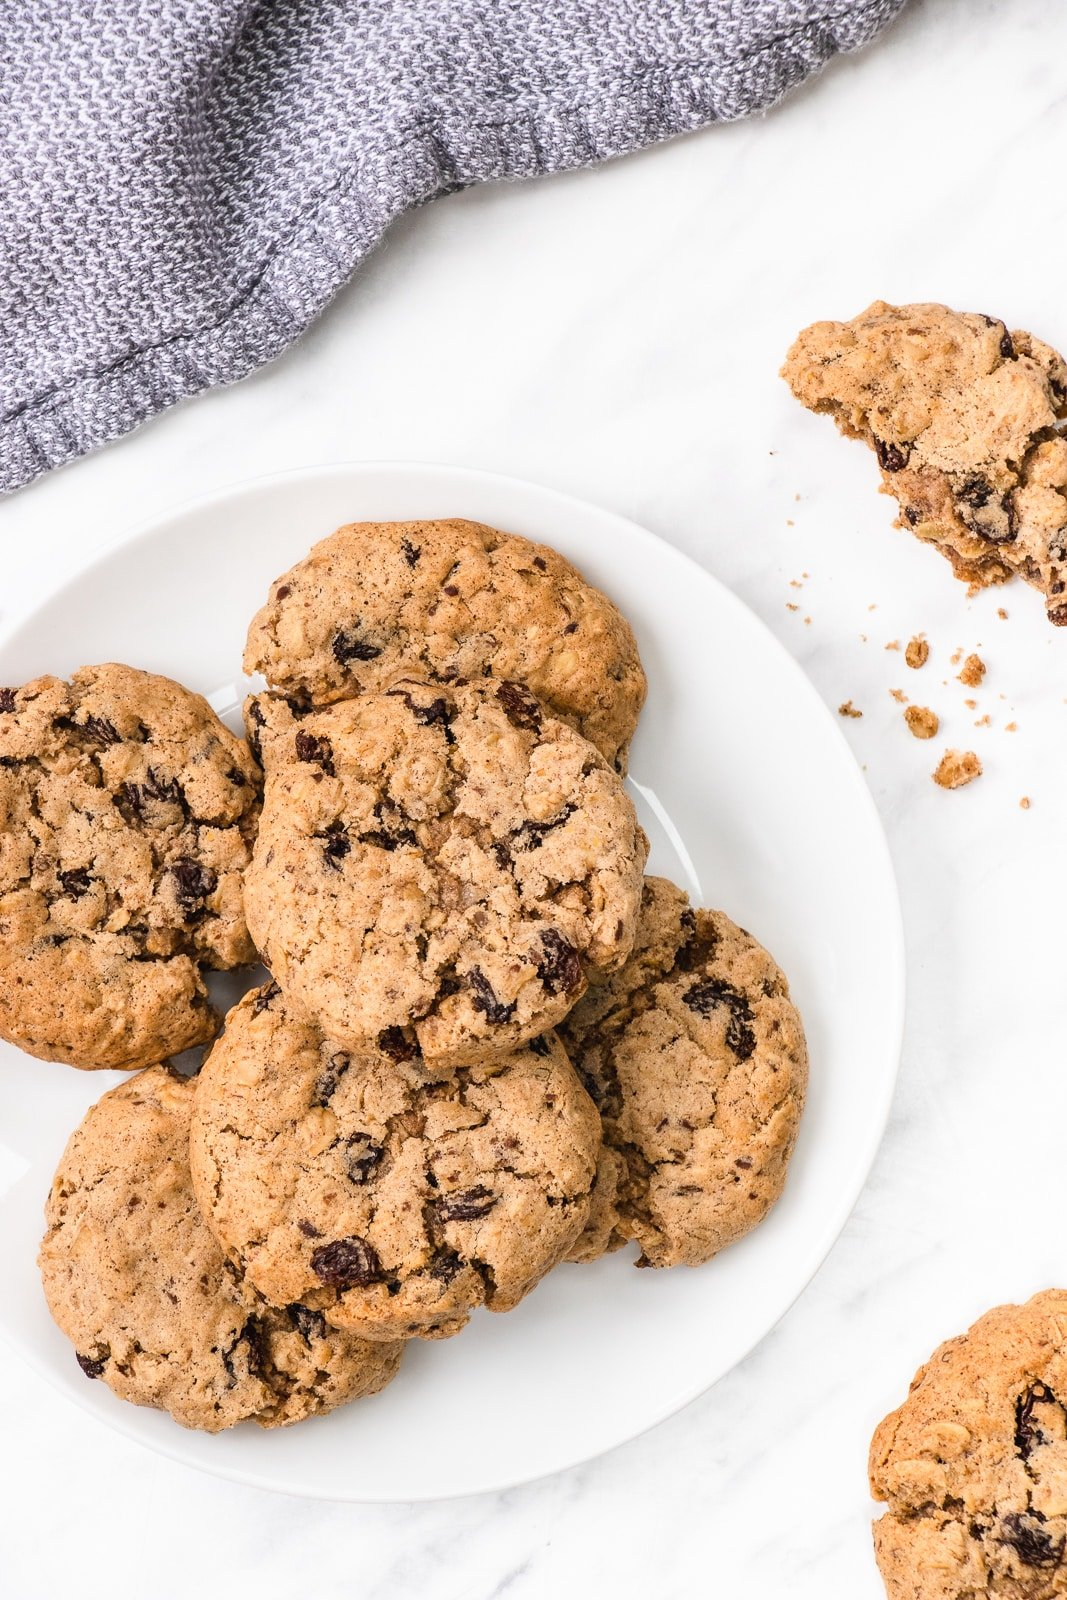 A stack of oatmeal raisin cookies on a round white plate surrounded by more cookies and some crumbs